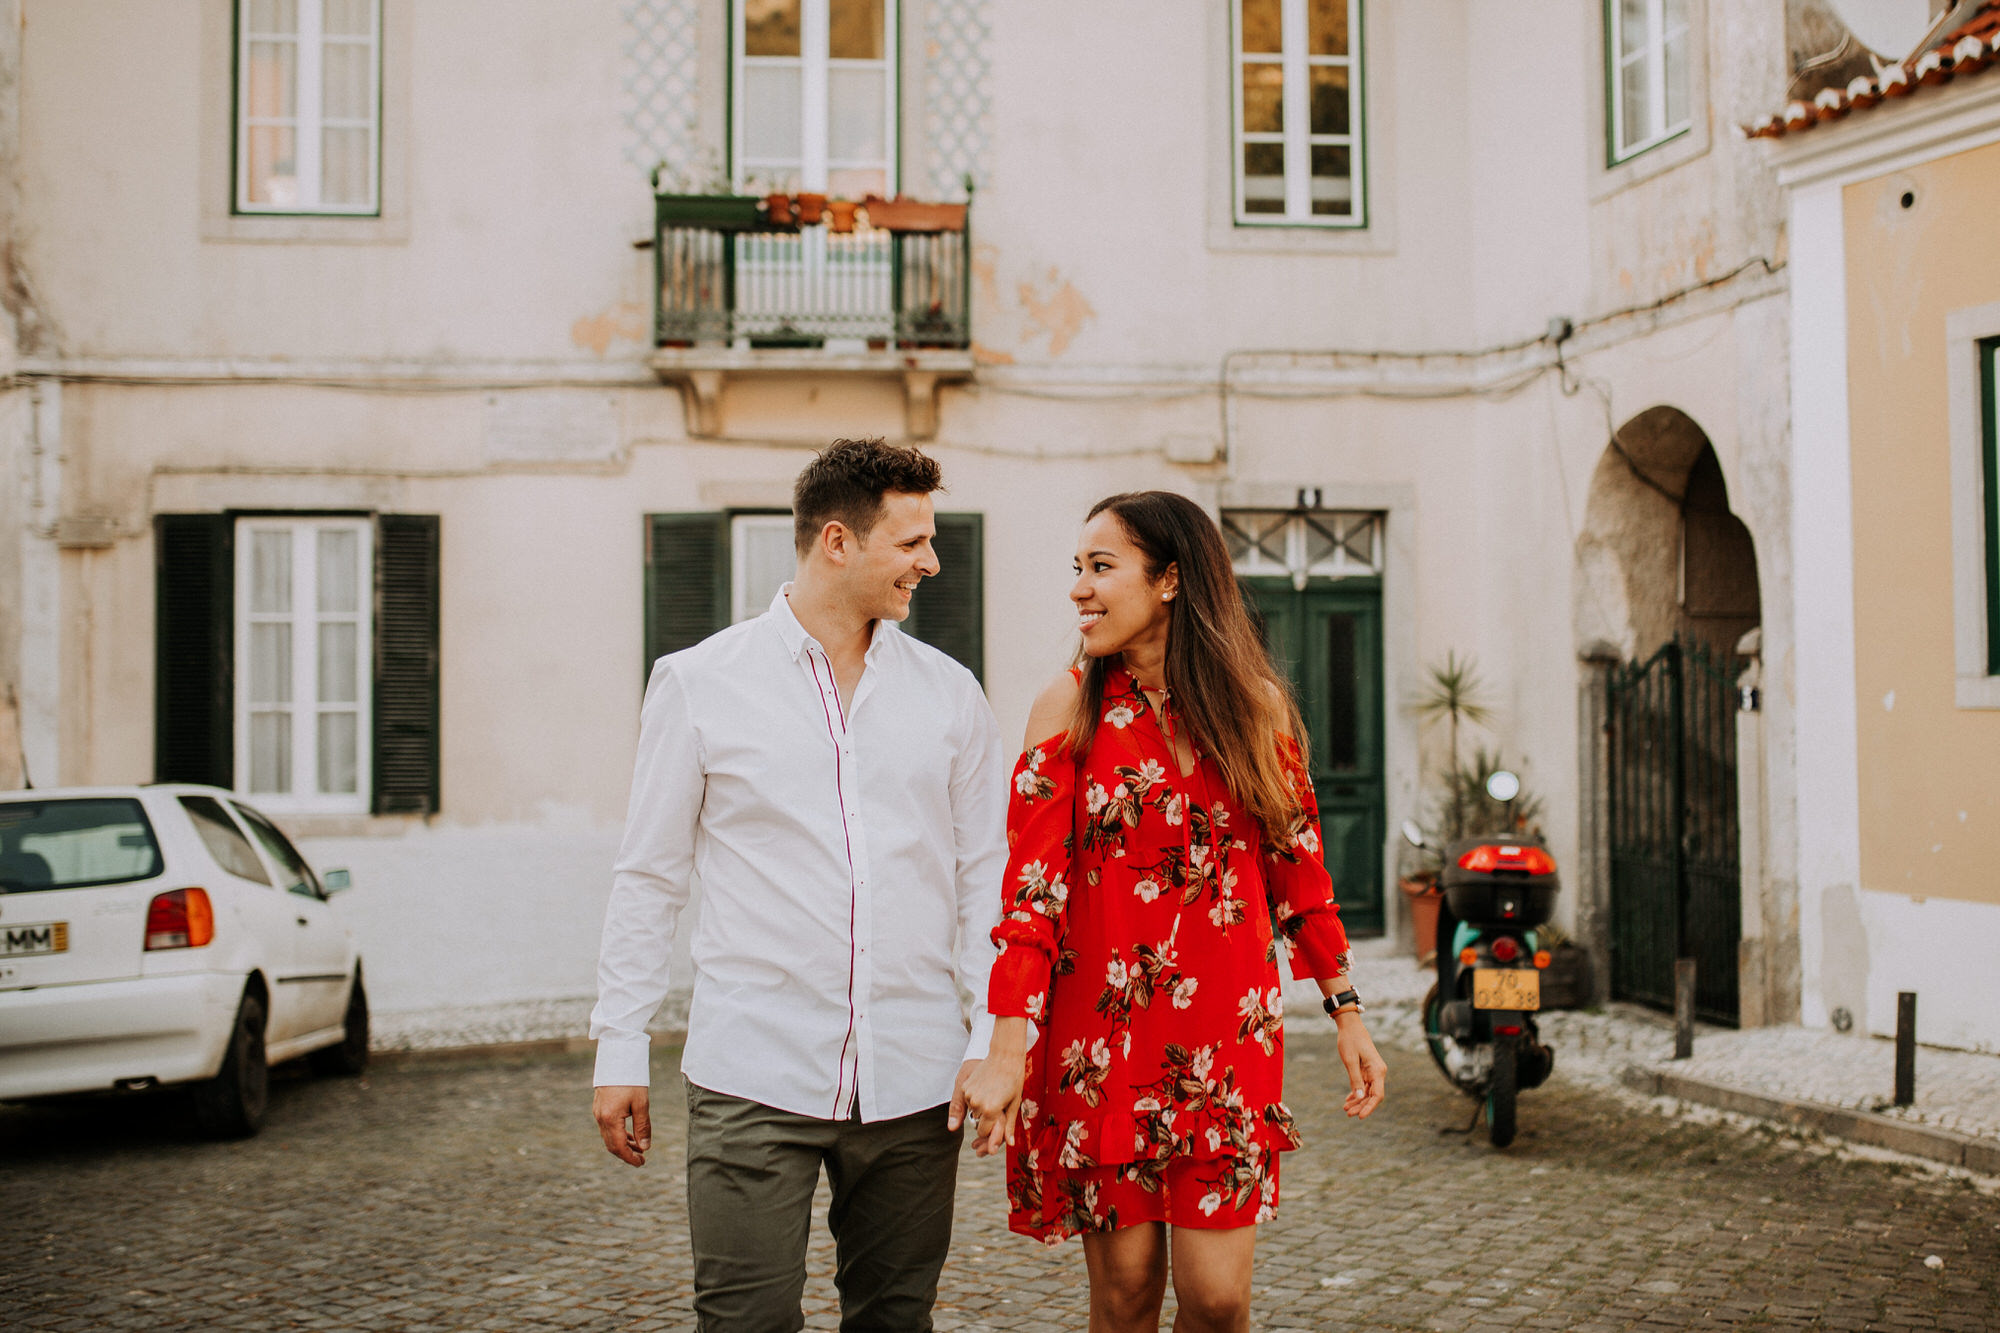 26-sessao-noivado-engagement-love-session-Sintra-lisboa-town-wedding-photography-photographer-natural-best-venue-planner-destination-filipe-santiago-fotografia-lifestyle-documentary